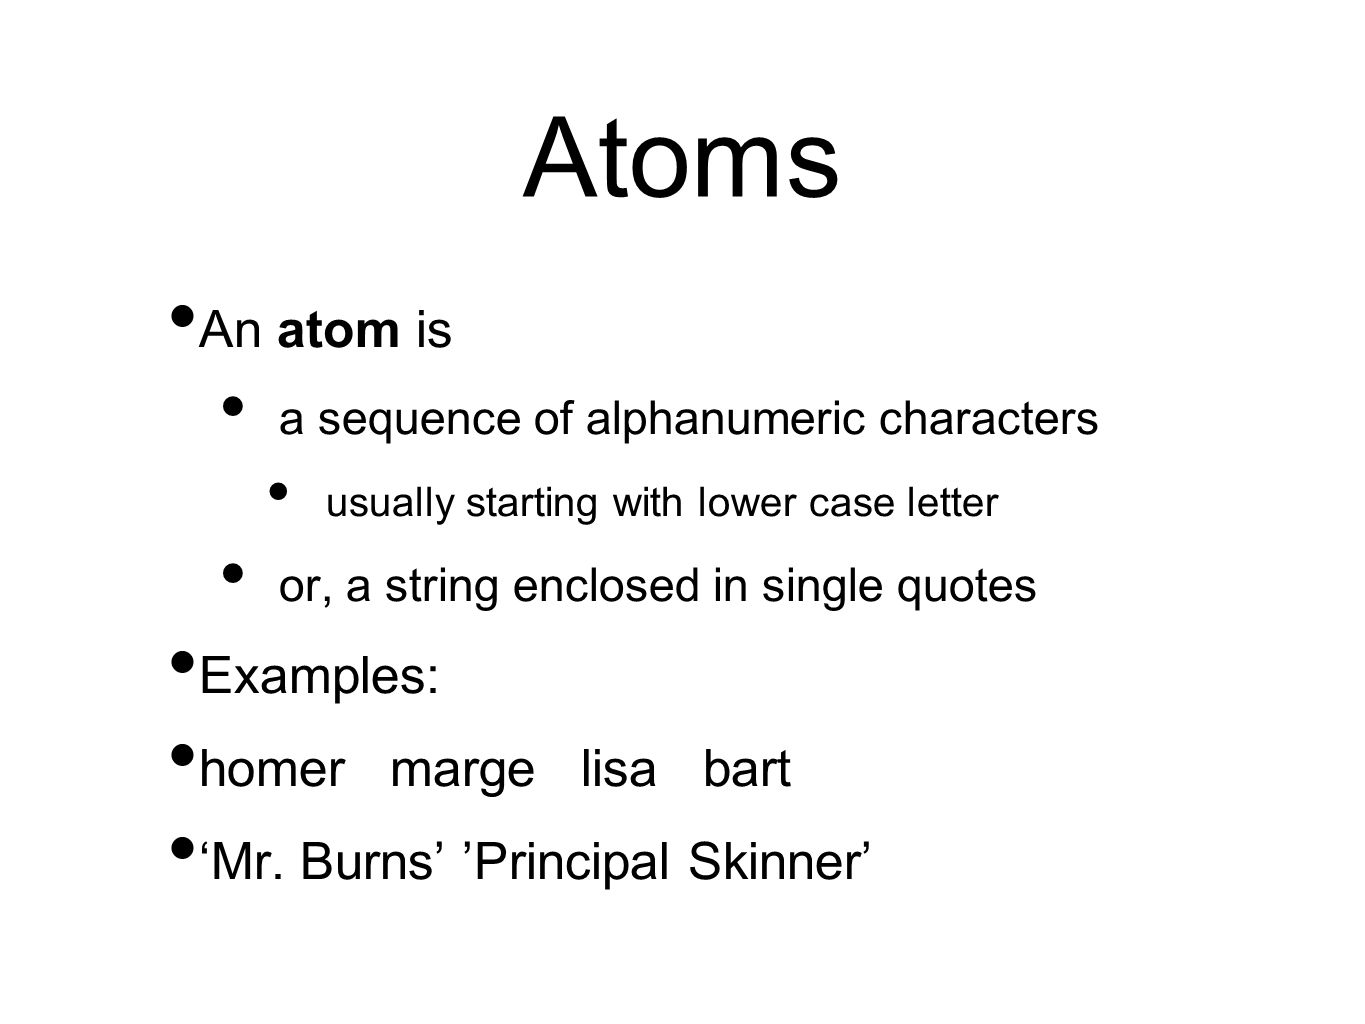 Atoms An atom is a sequence of alphanumeric characters usually starting with lower case letter or, a string enclosed in single quotes Examples: homer marge lisa bart 'Mr.